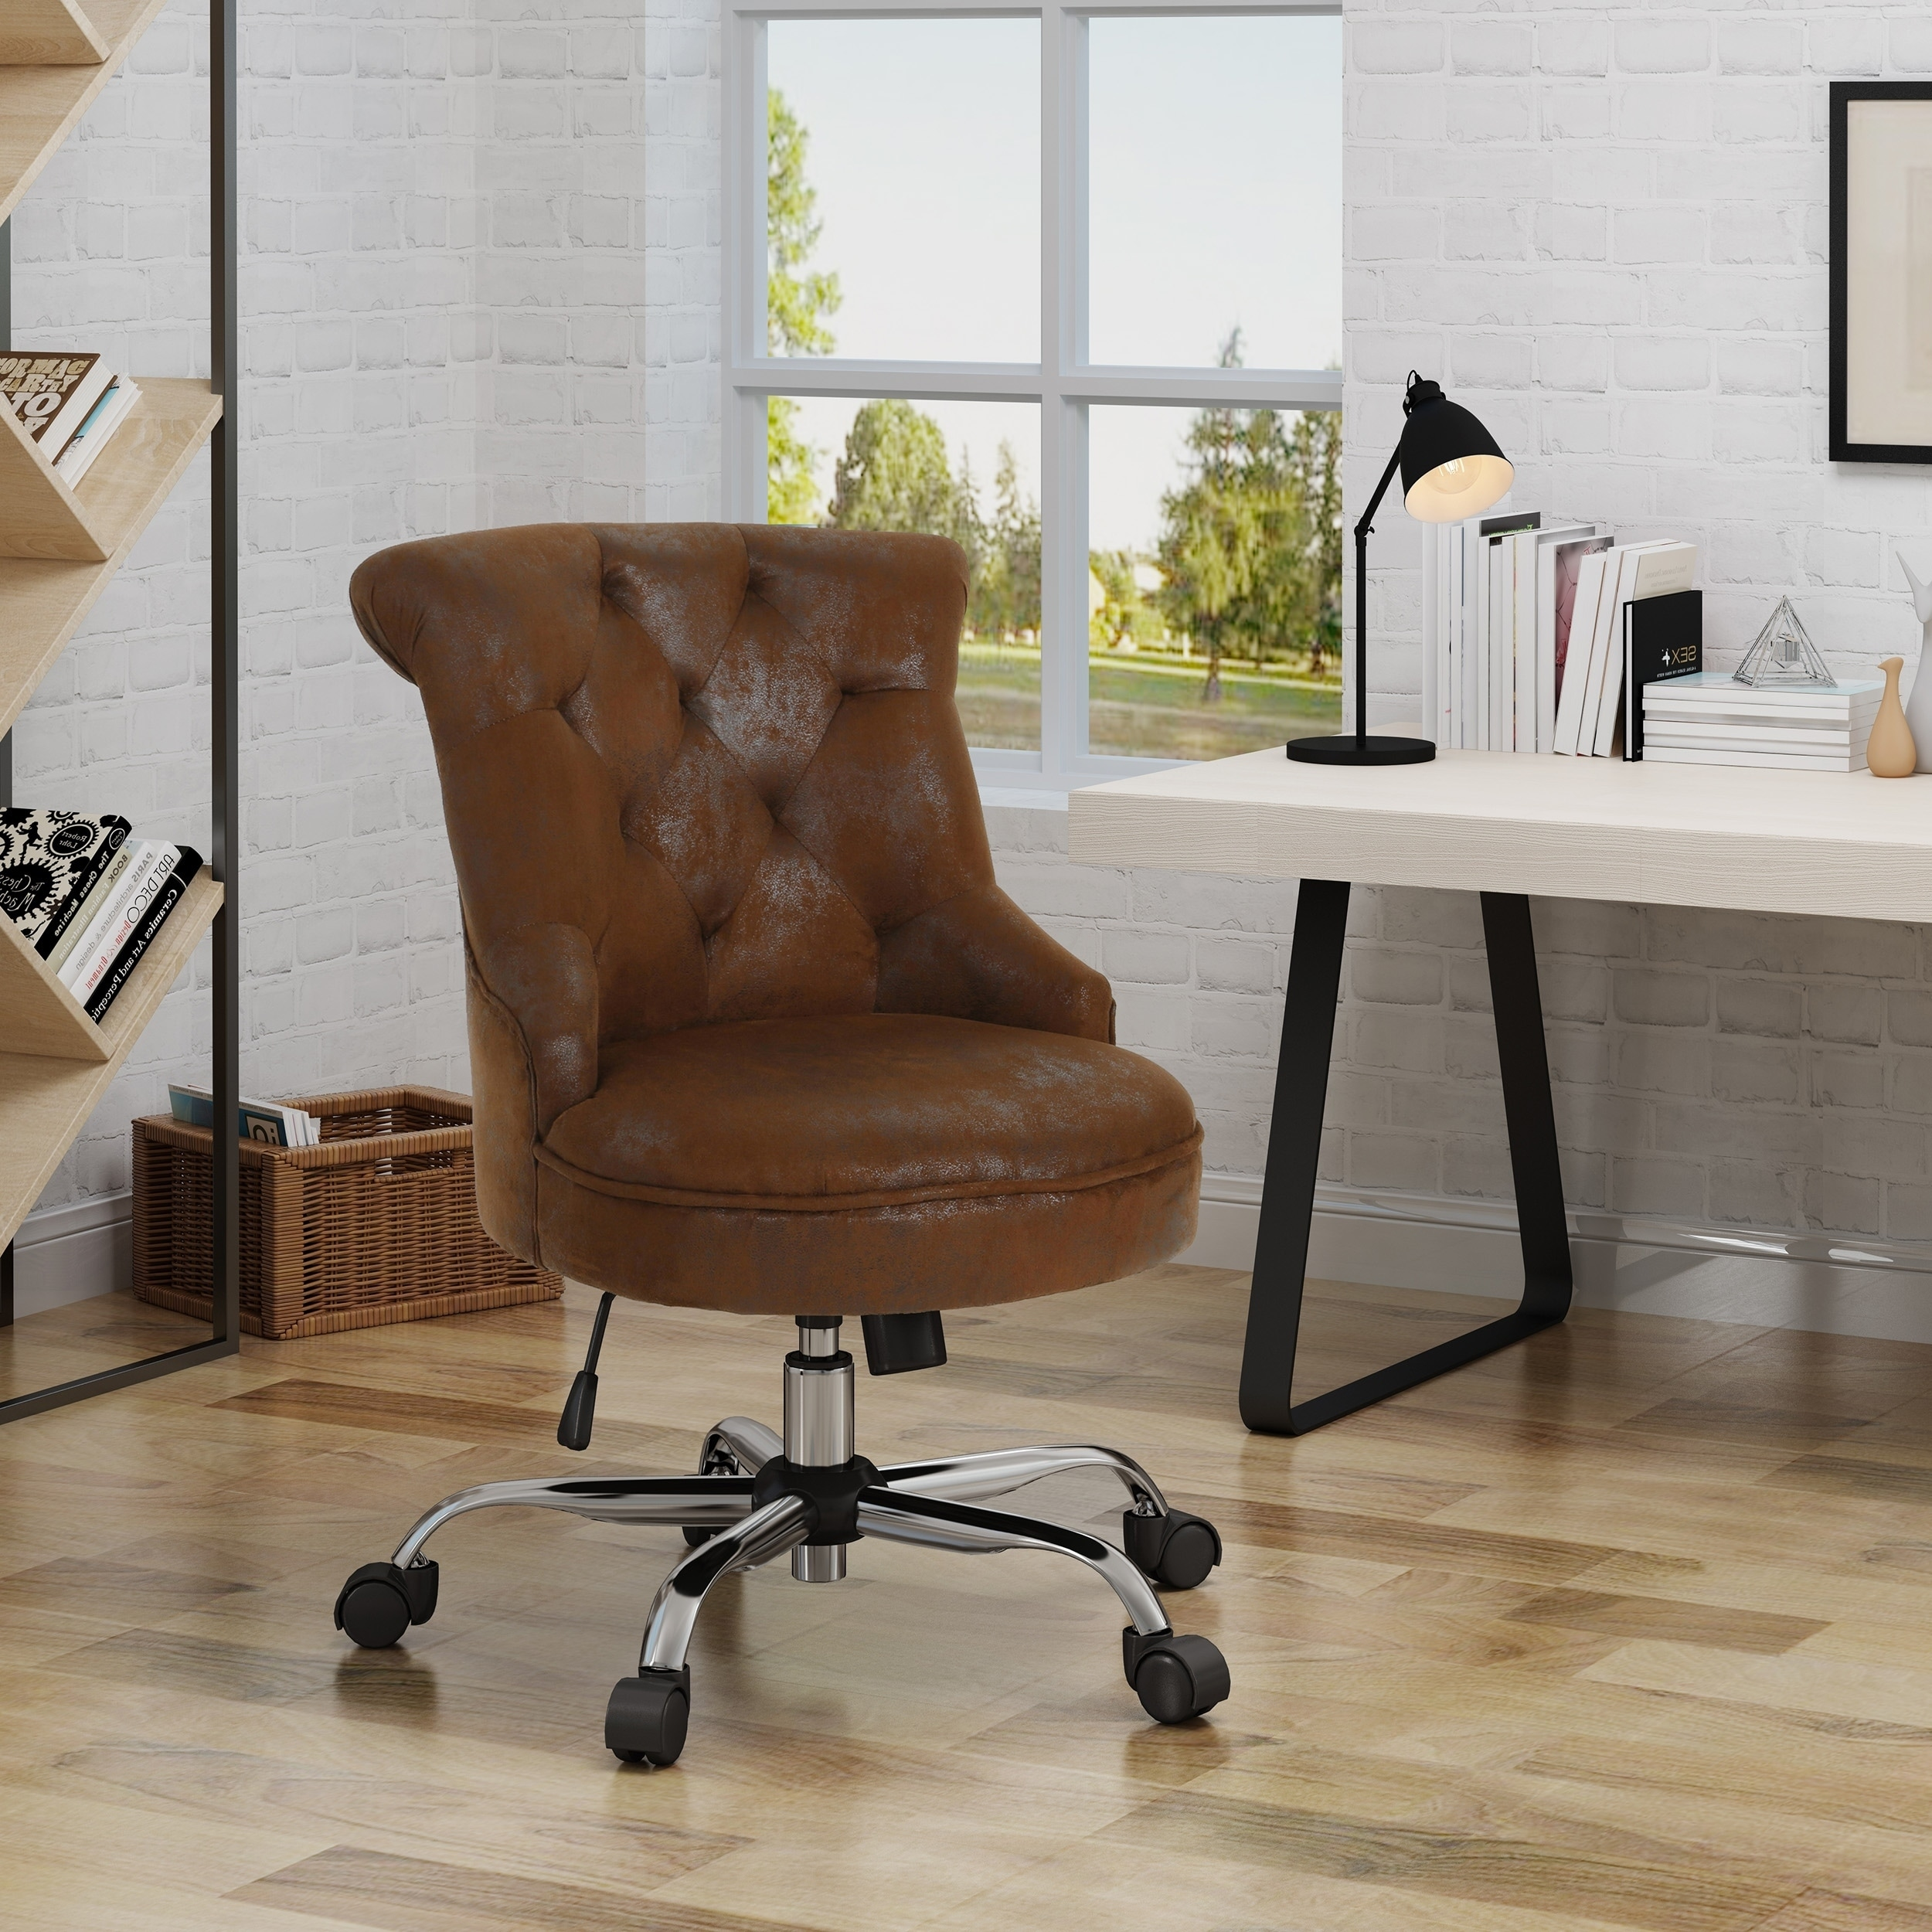 Shop Auden Home Office Desk Chair By Christopher Knight Home On Sale Overstock 21546424 Slate Chrome